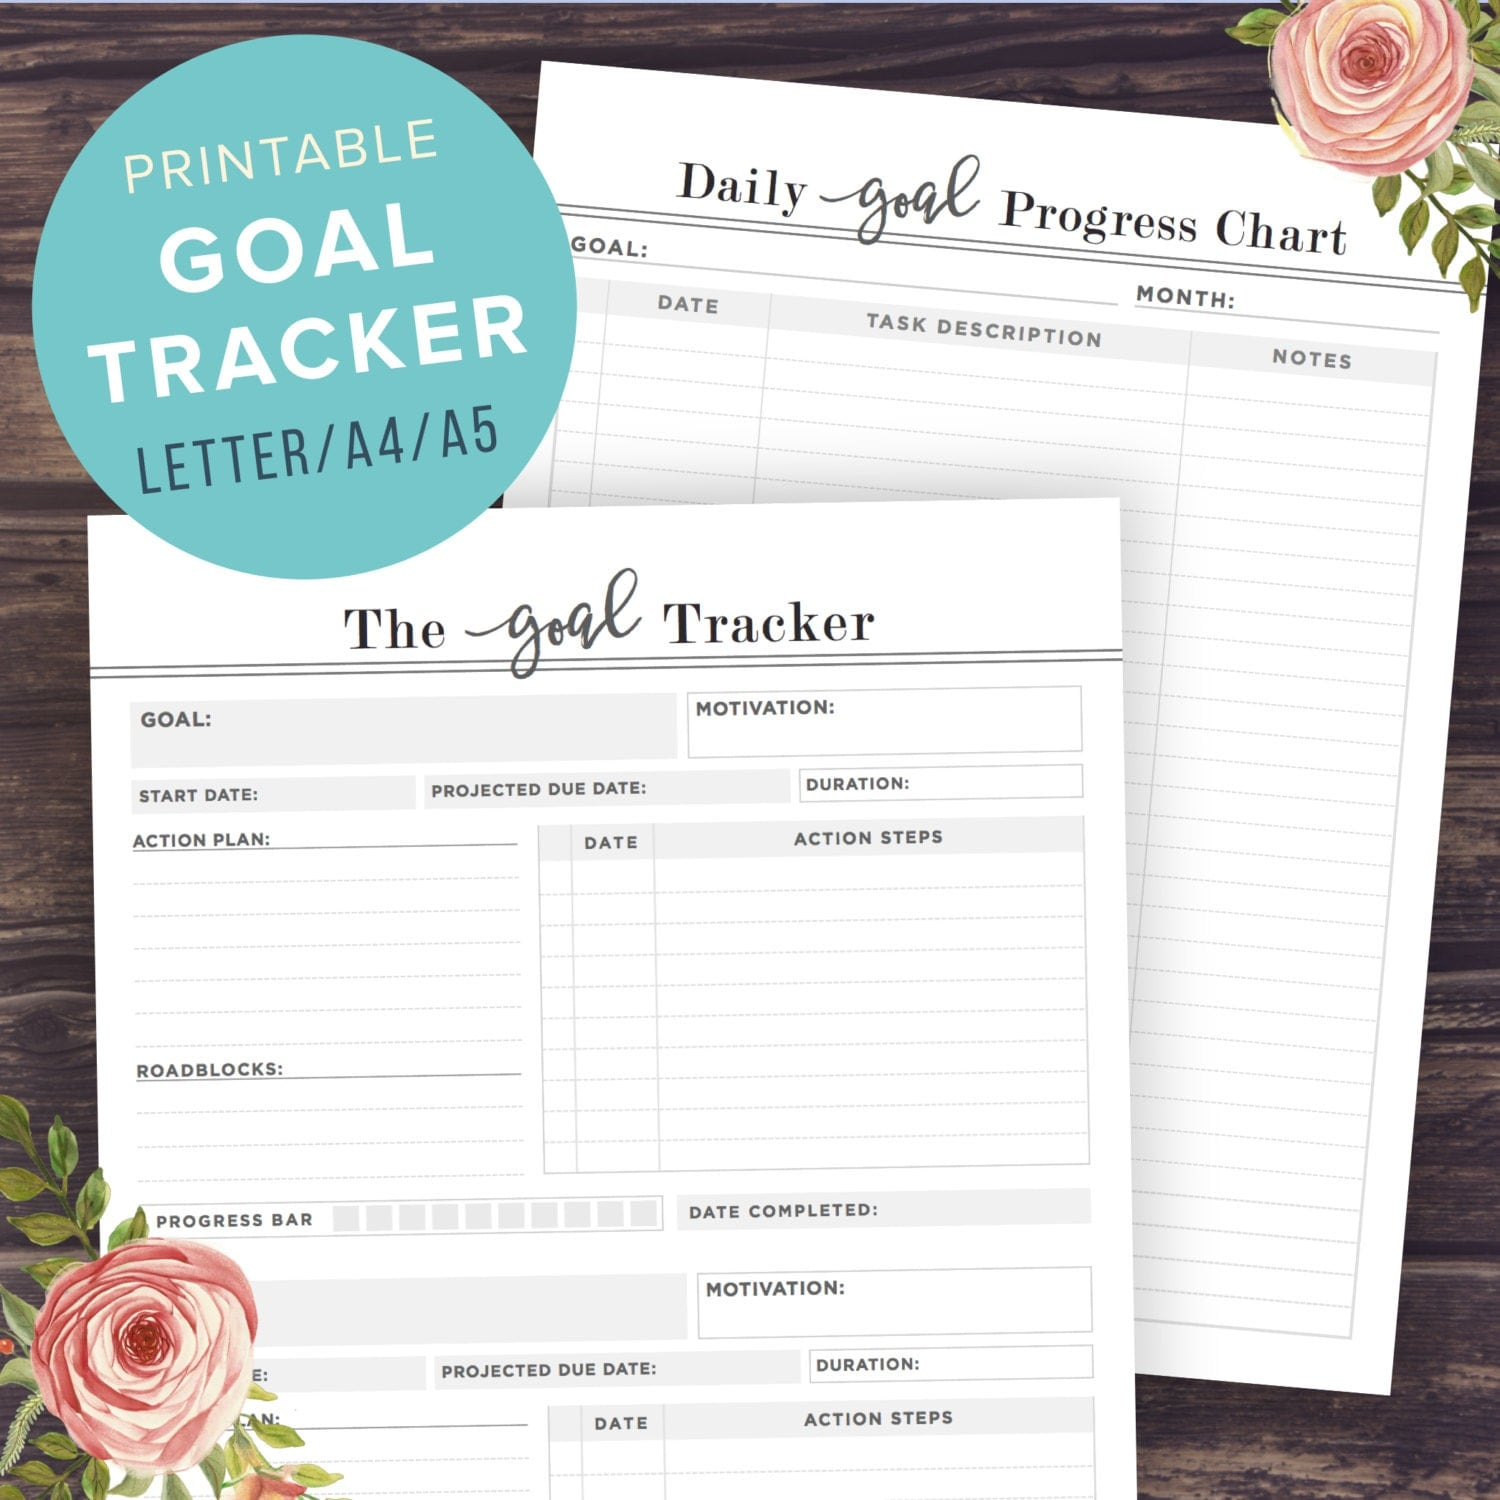 It's just an image of Impertinent Printable Goal Tracker